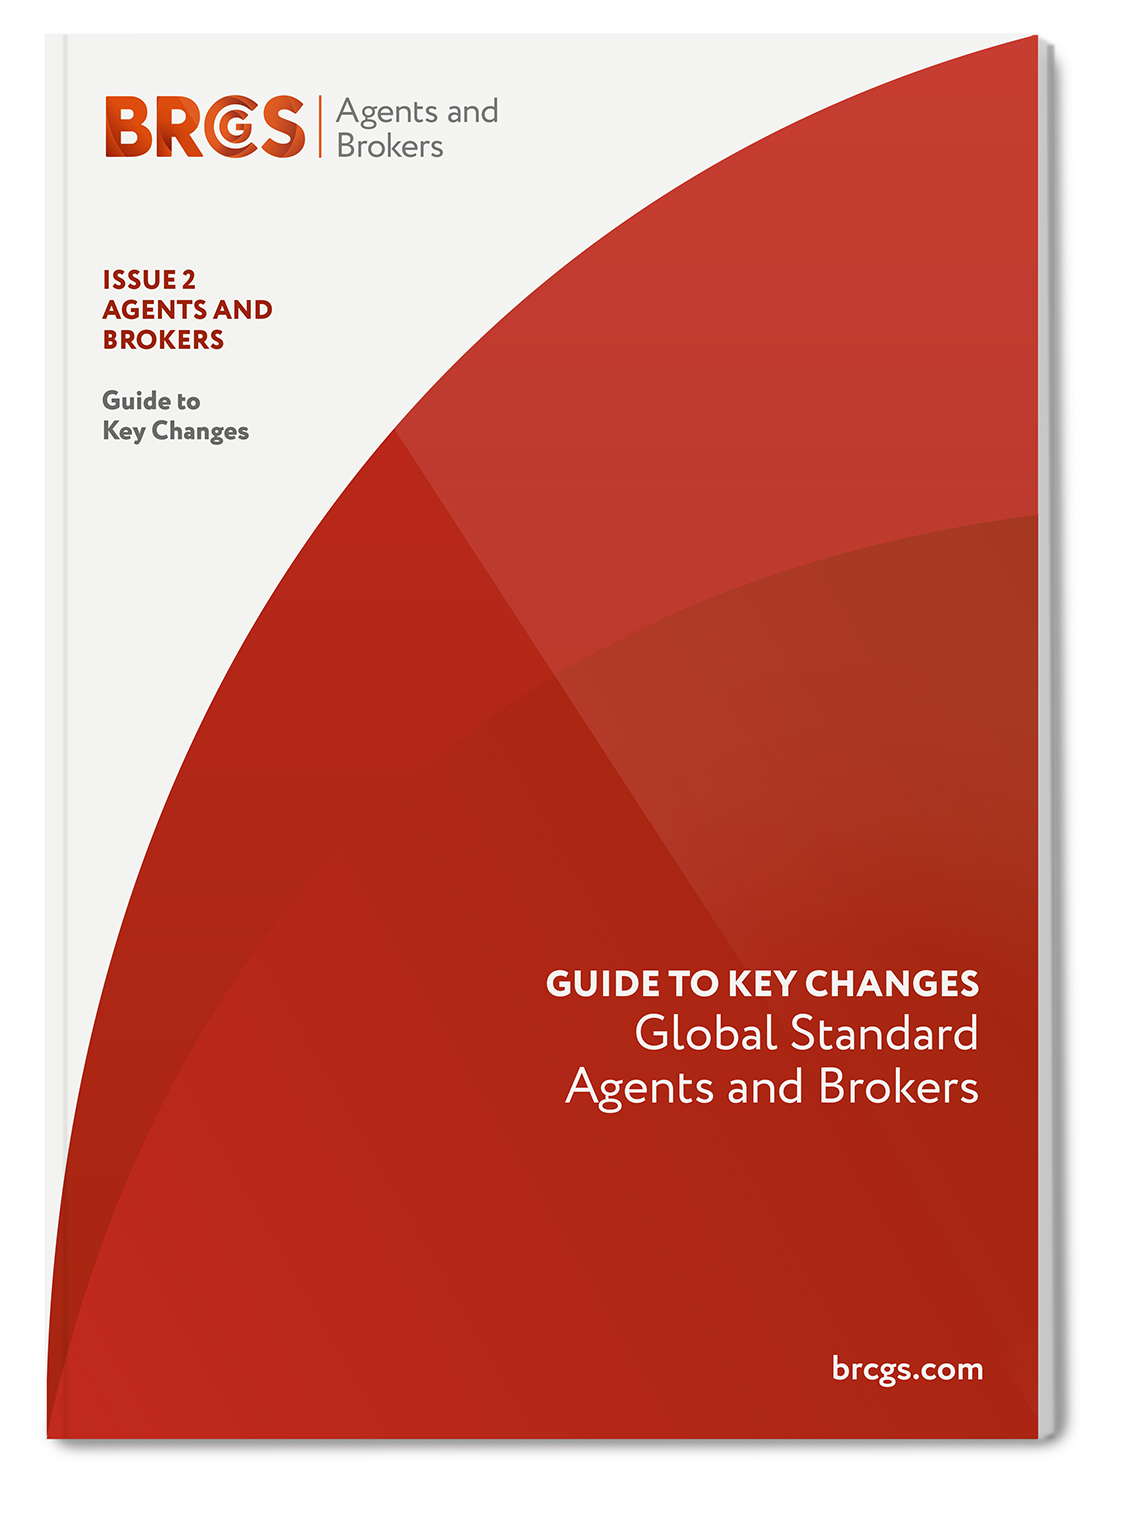 Global Standard for Agents and Brokers Issue 2 Guide to Key Changes